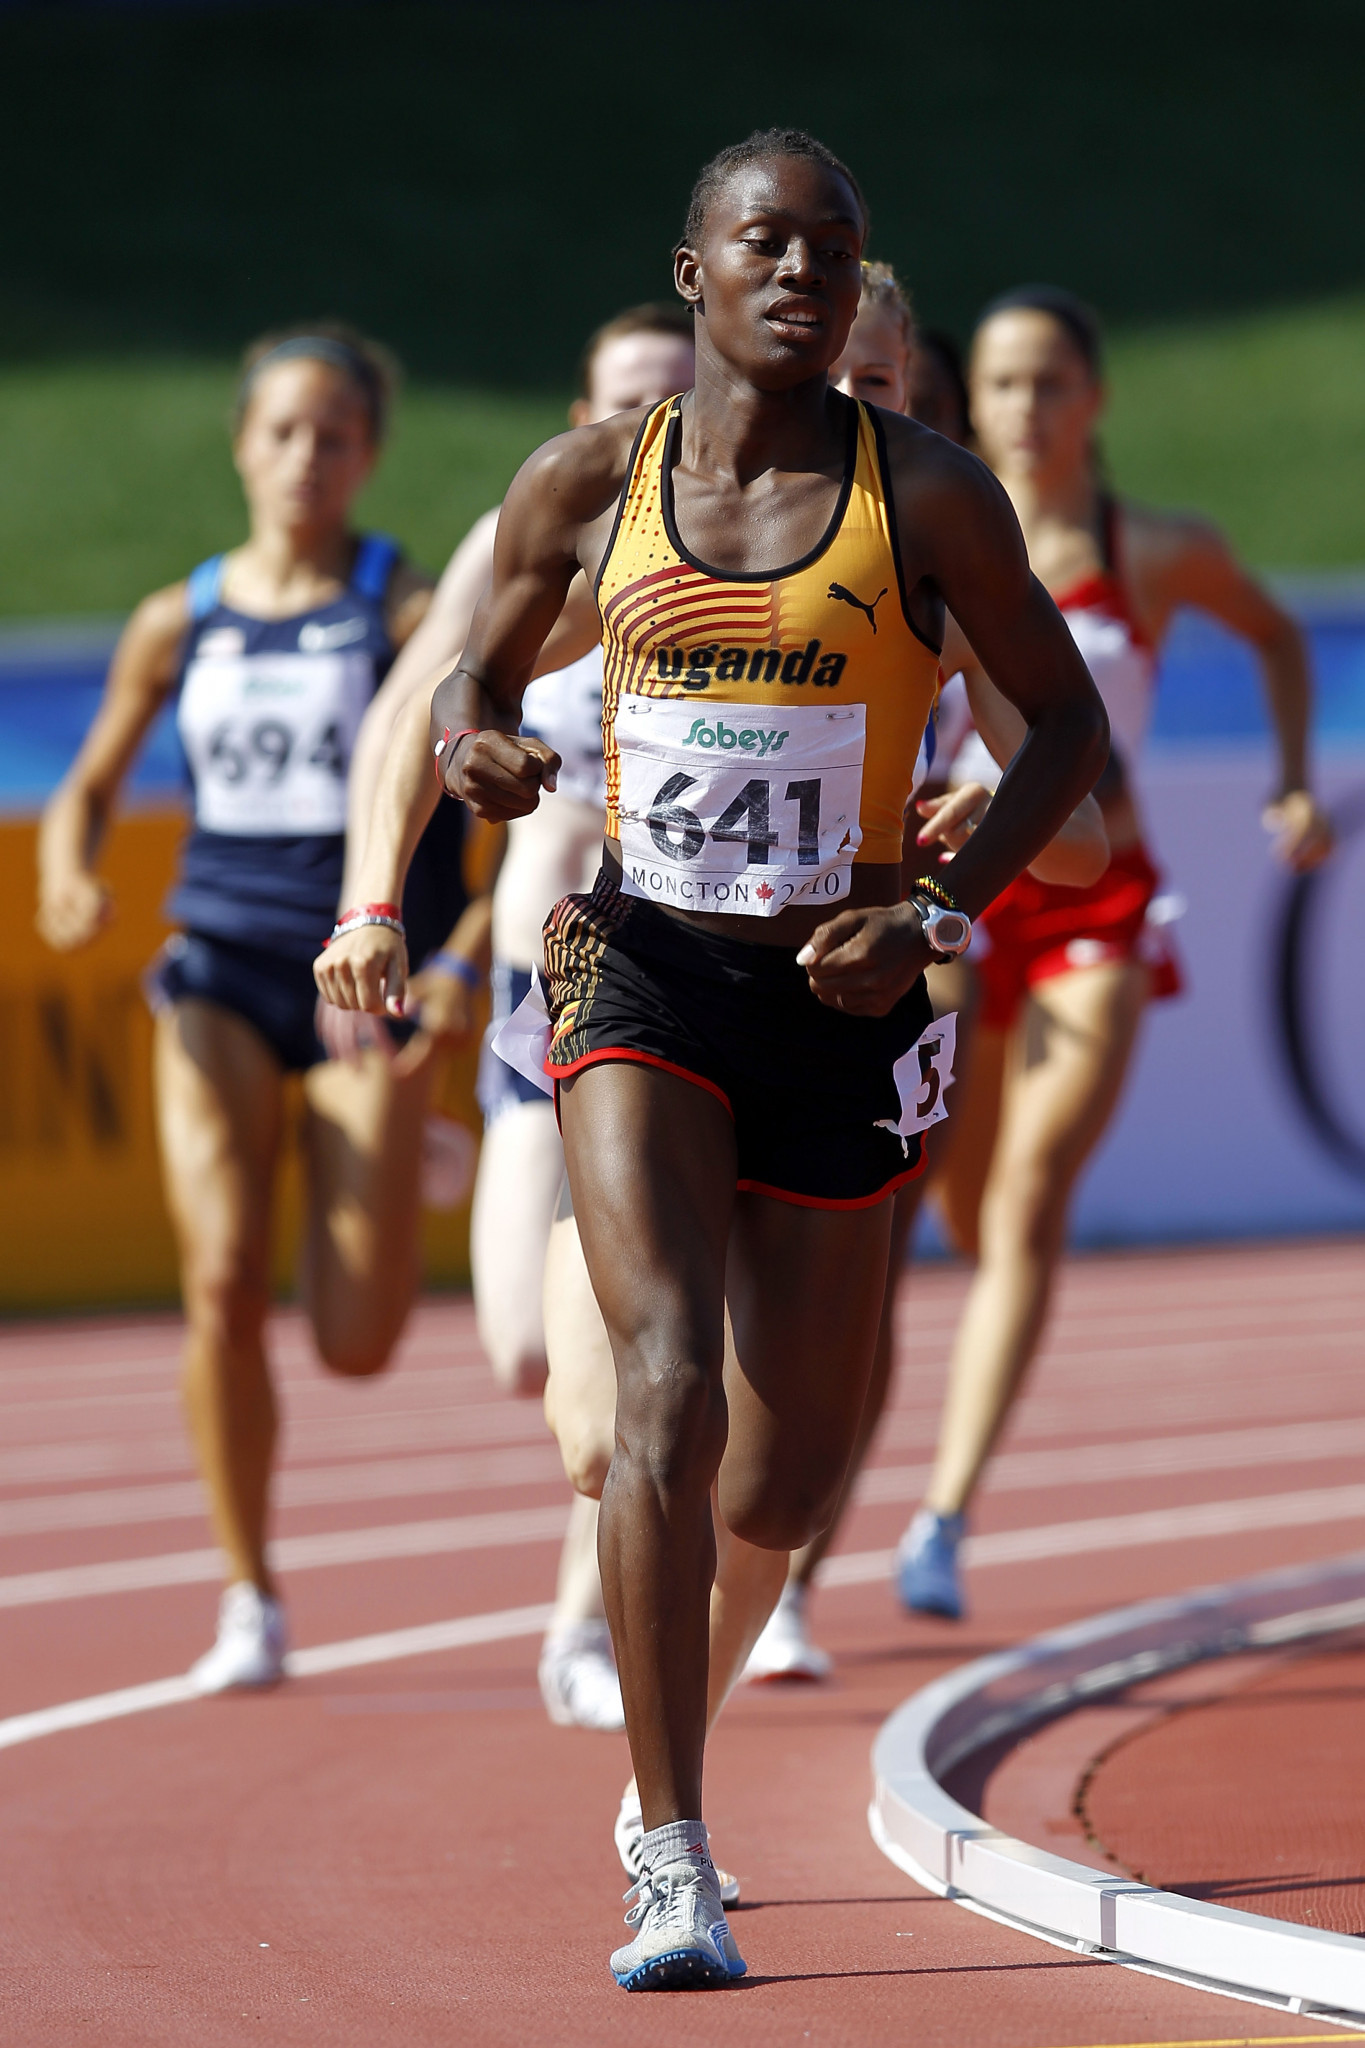 Uganda runner Annet Negesa claimed during an interview on German television that she had been given no choice over having surgery to lower her testosterone levels, which had had serious health issues ©Getty Images